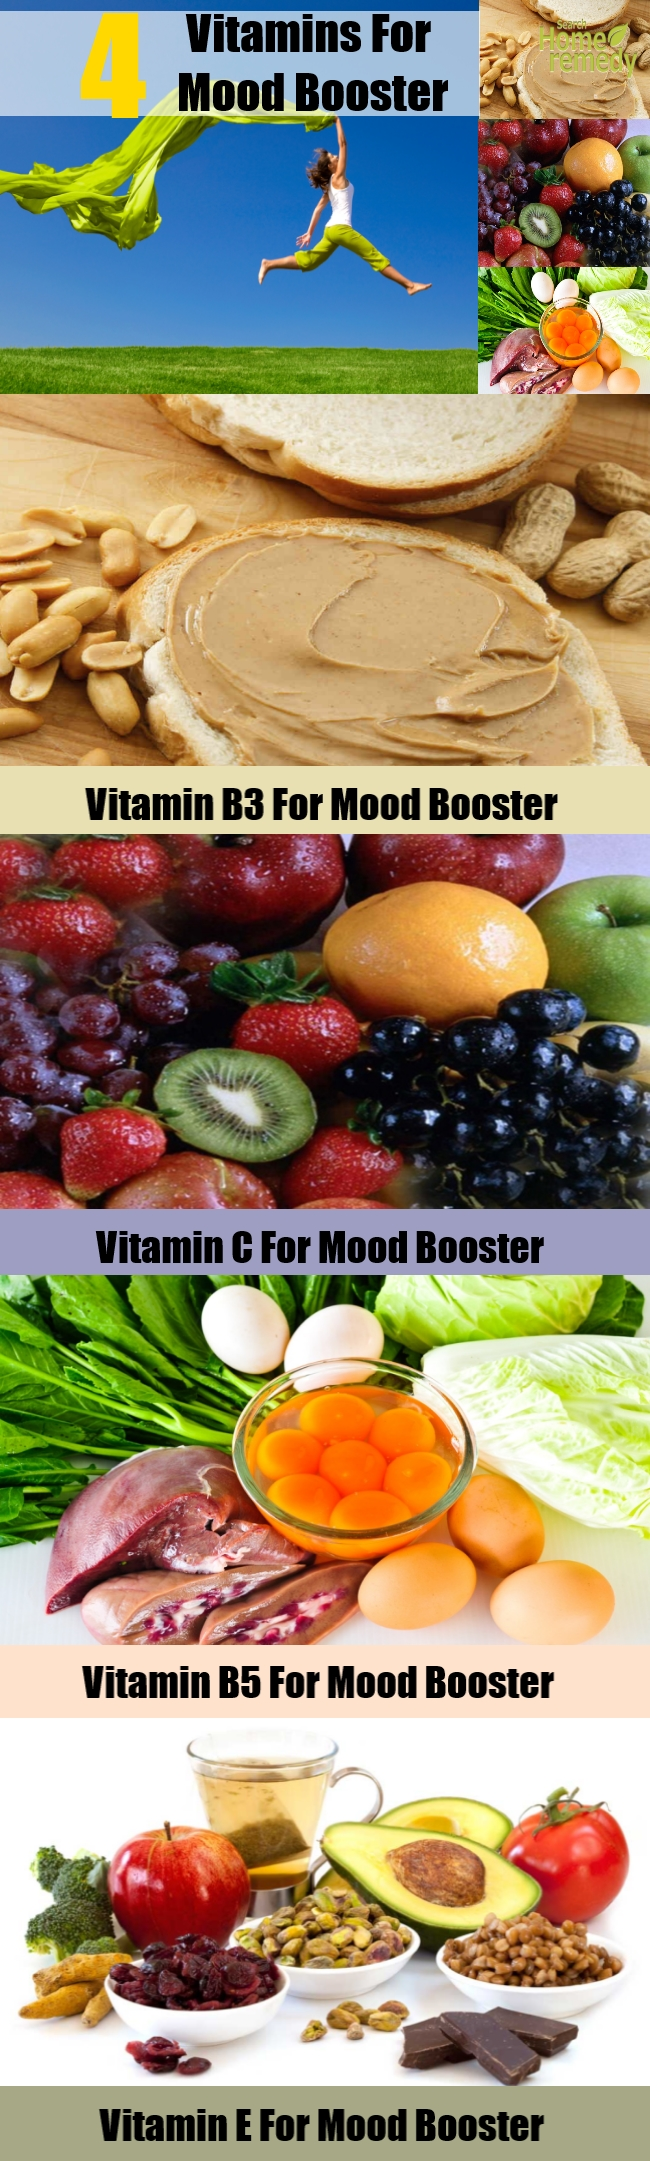 4 Vitamins For Mood Booster